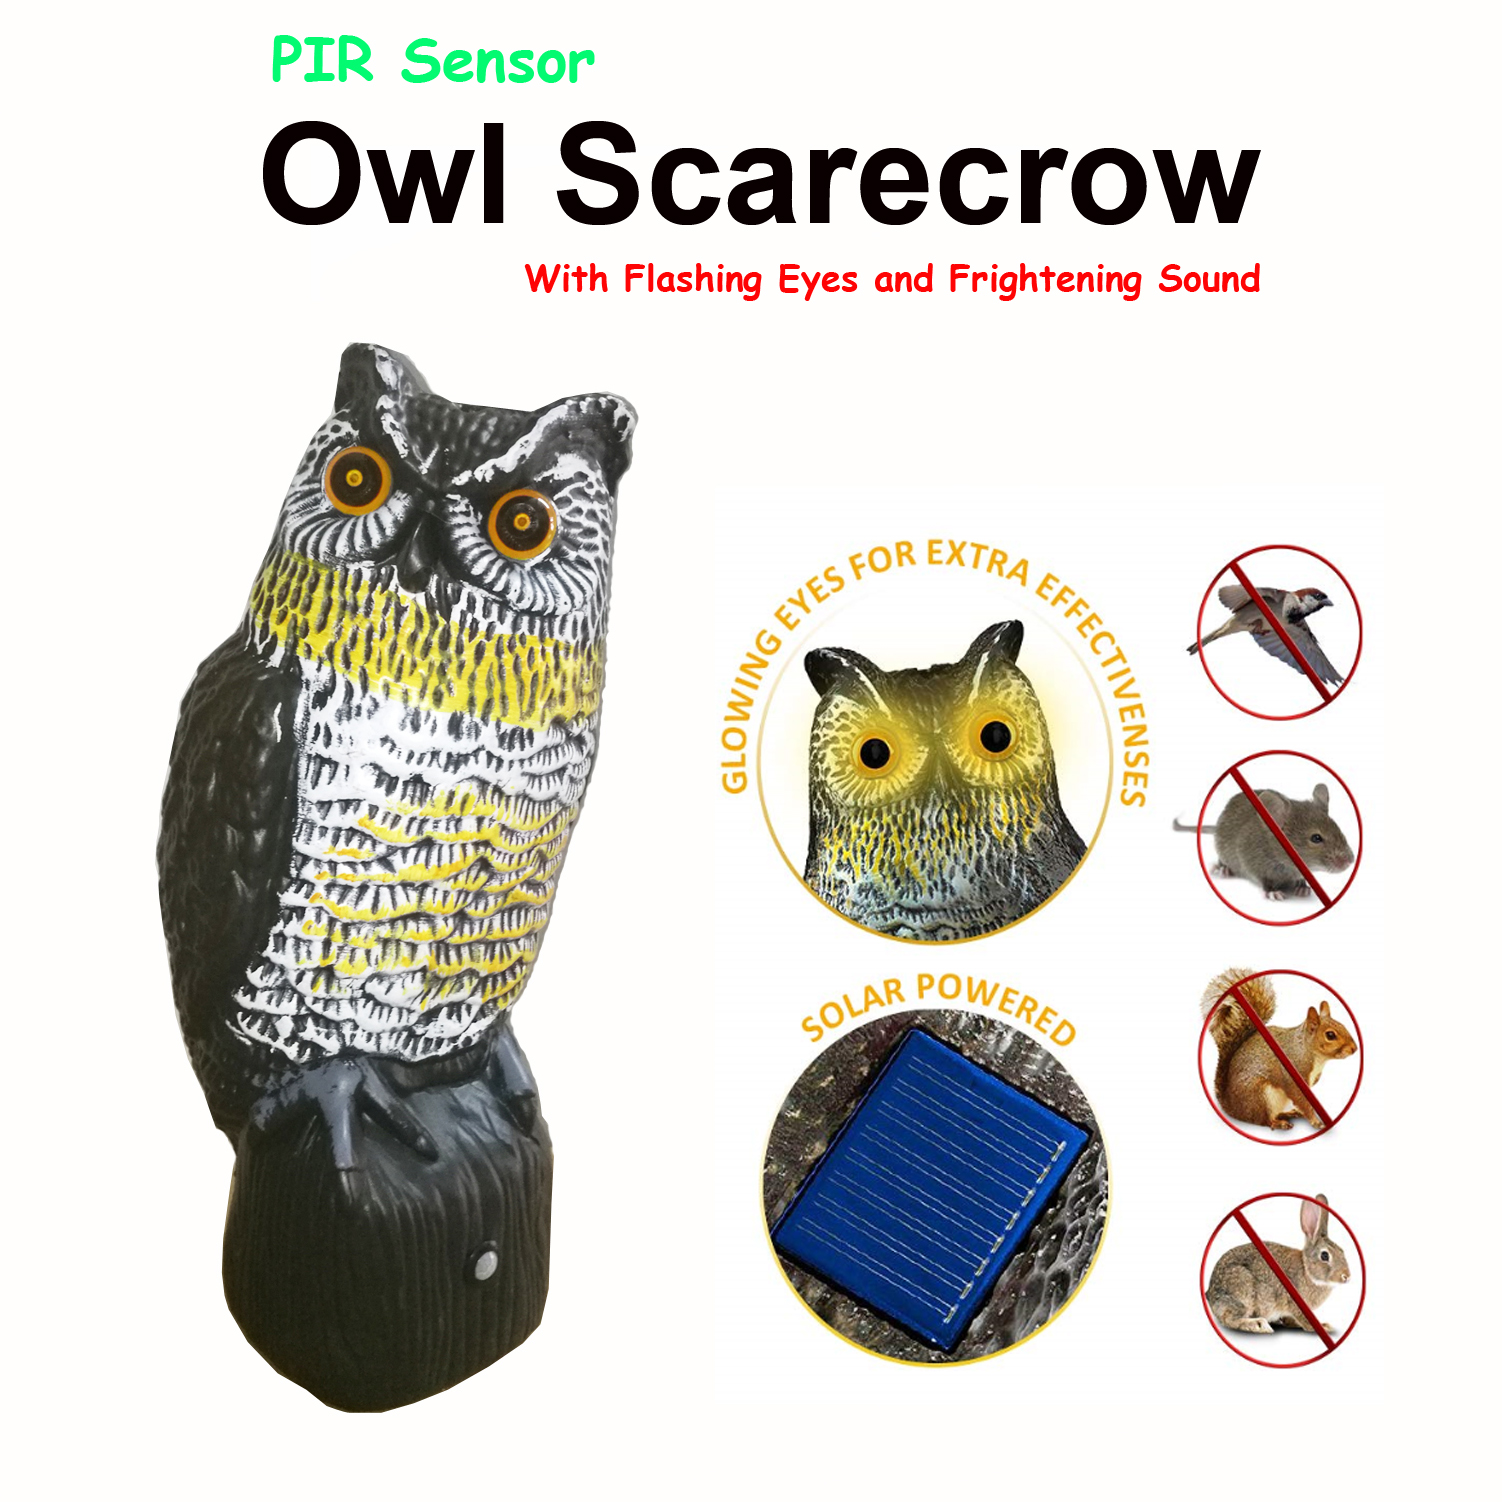 Solar Powered Bird Repellent Owl Scarecrow with Flashing Eyes and Frightening Sound PIR Activated Garden Animal